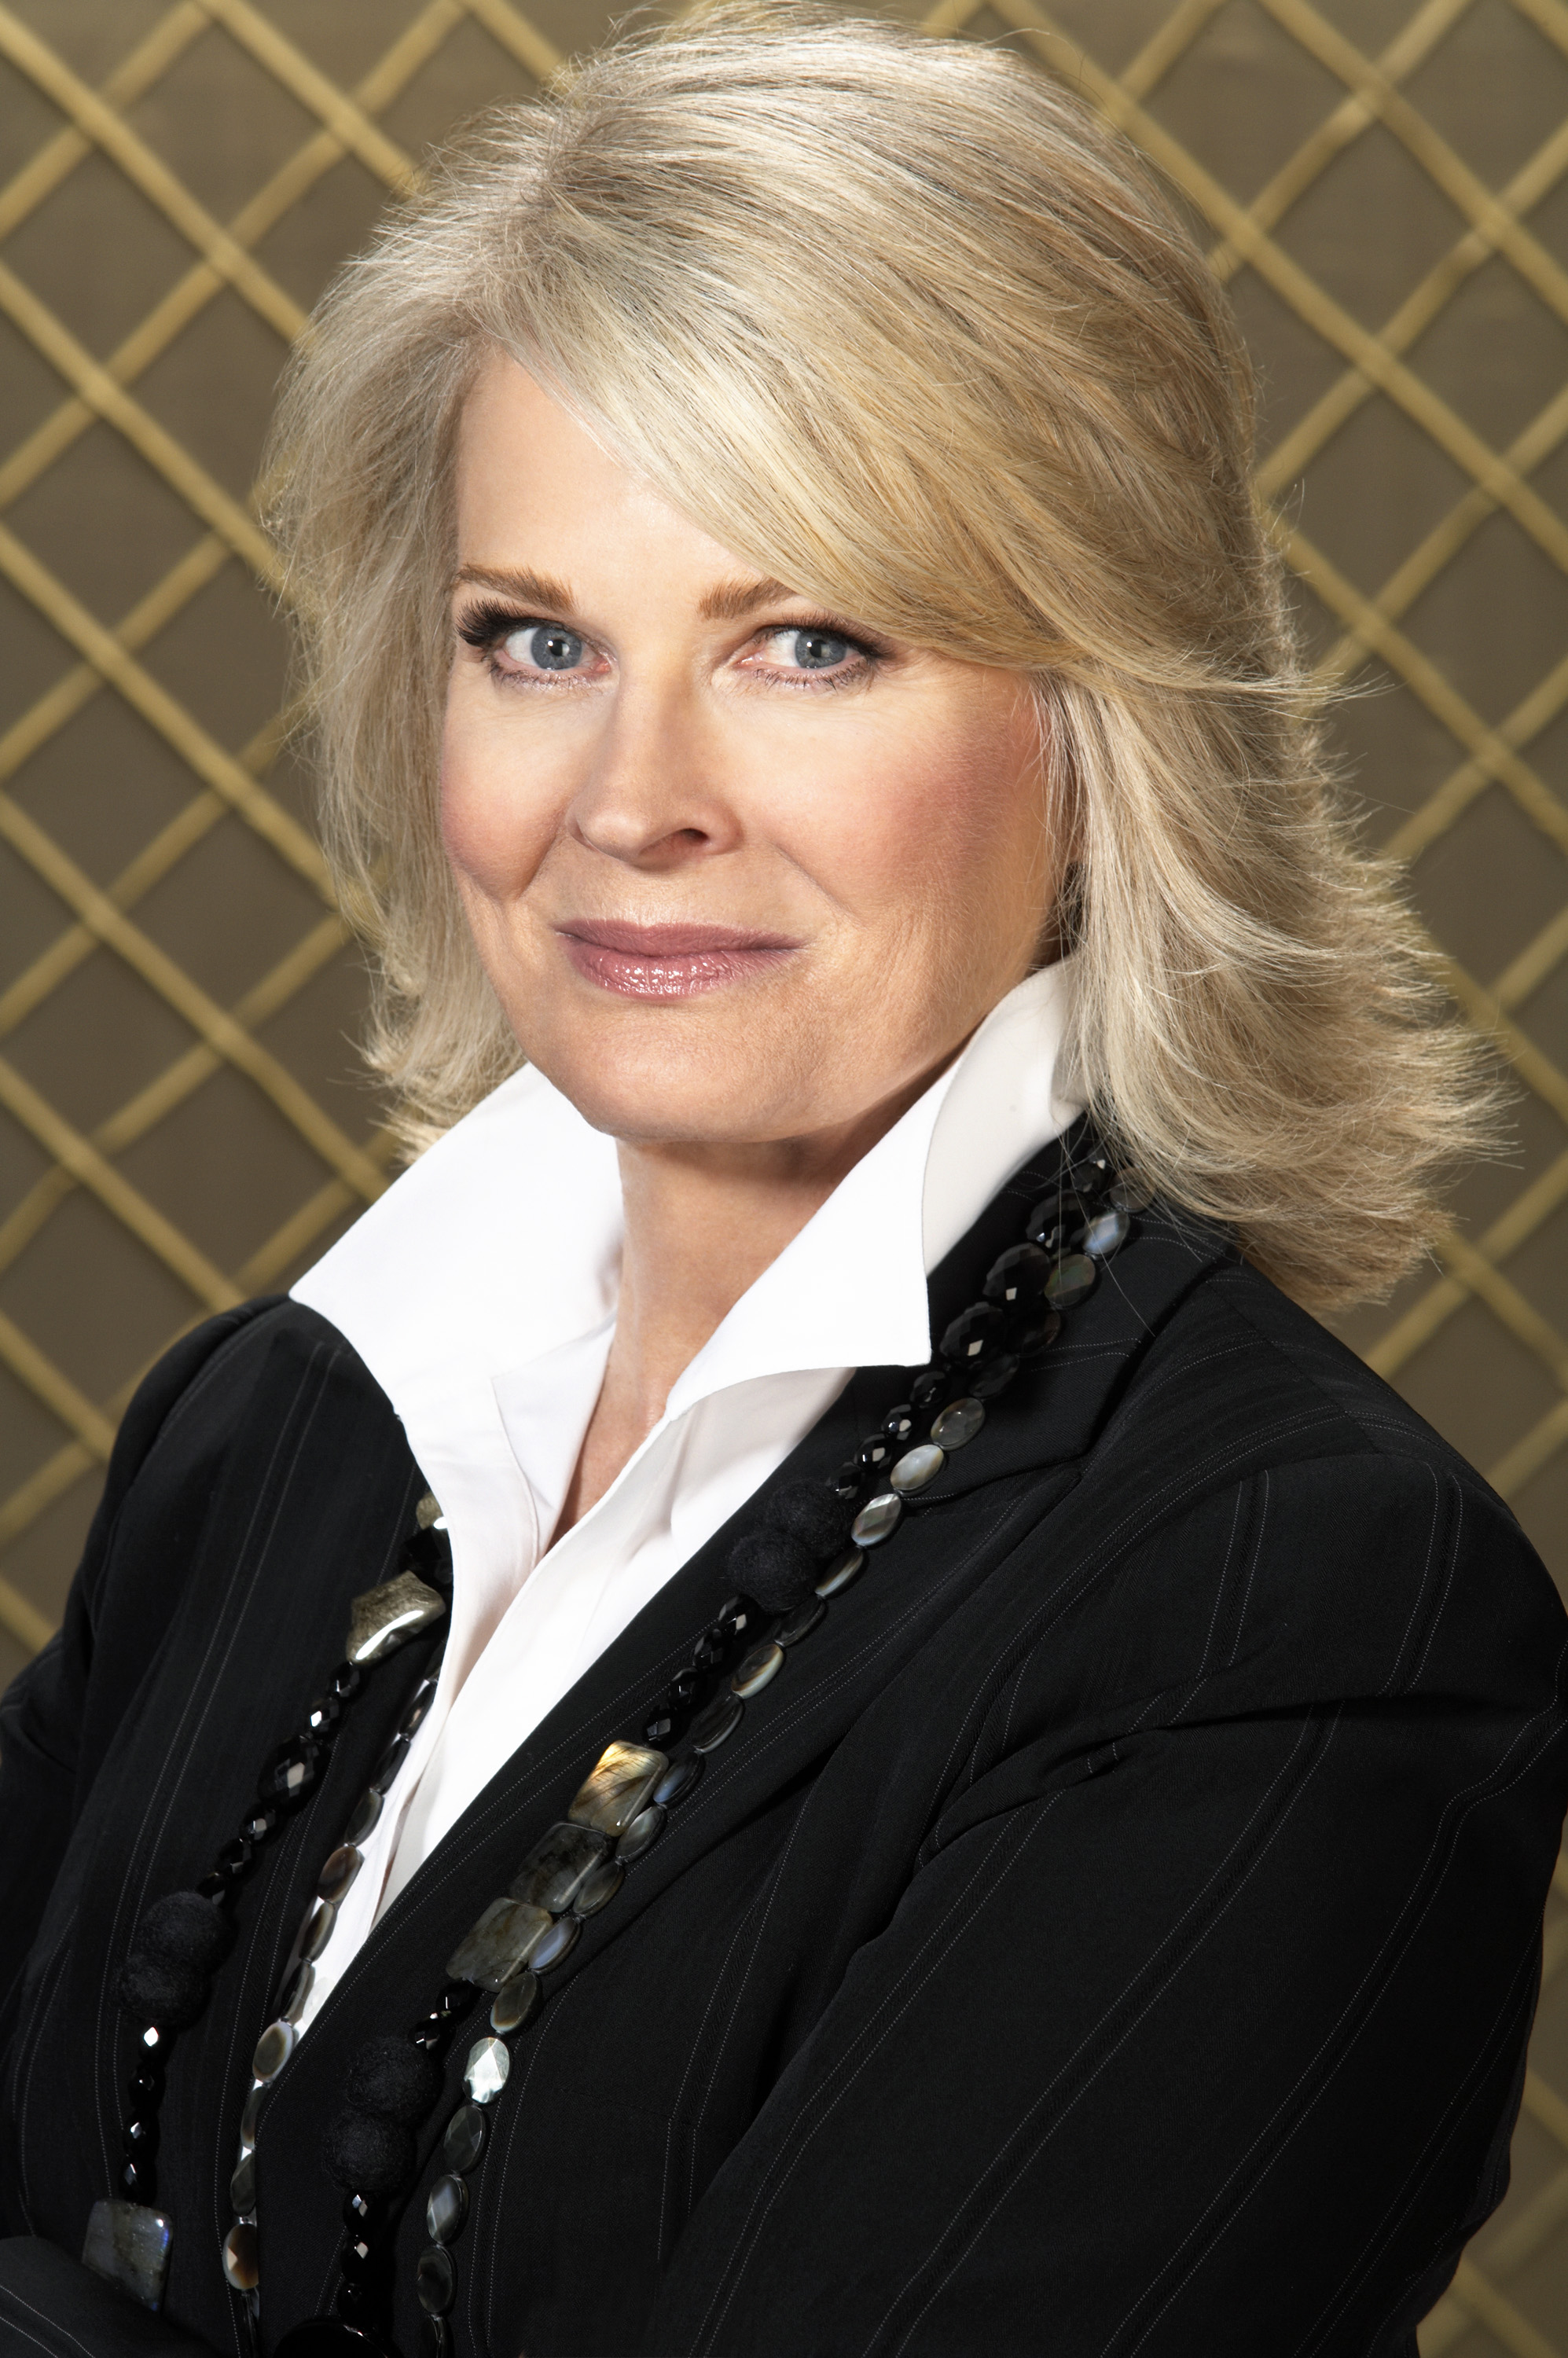 candice bergen photography